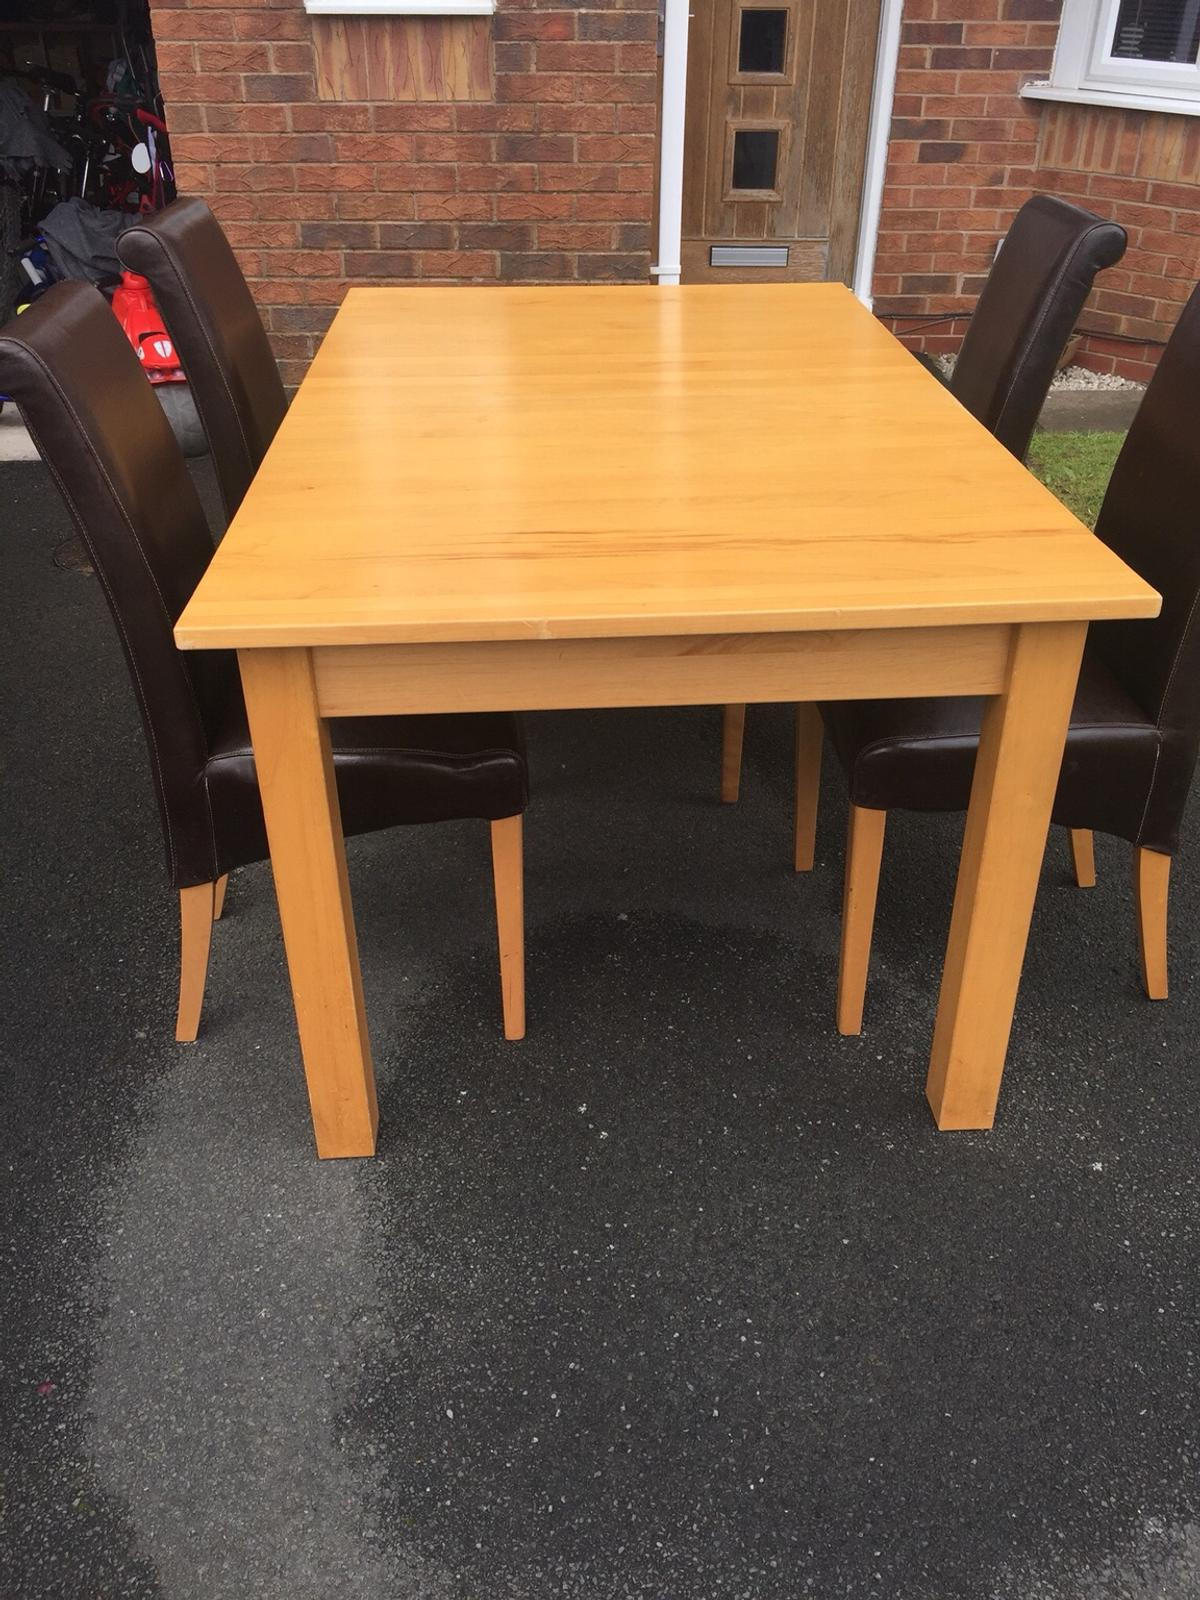 Solid Wood Table U0026 4 Chairs In Darwen For £50.00 For Sale ...